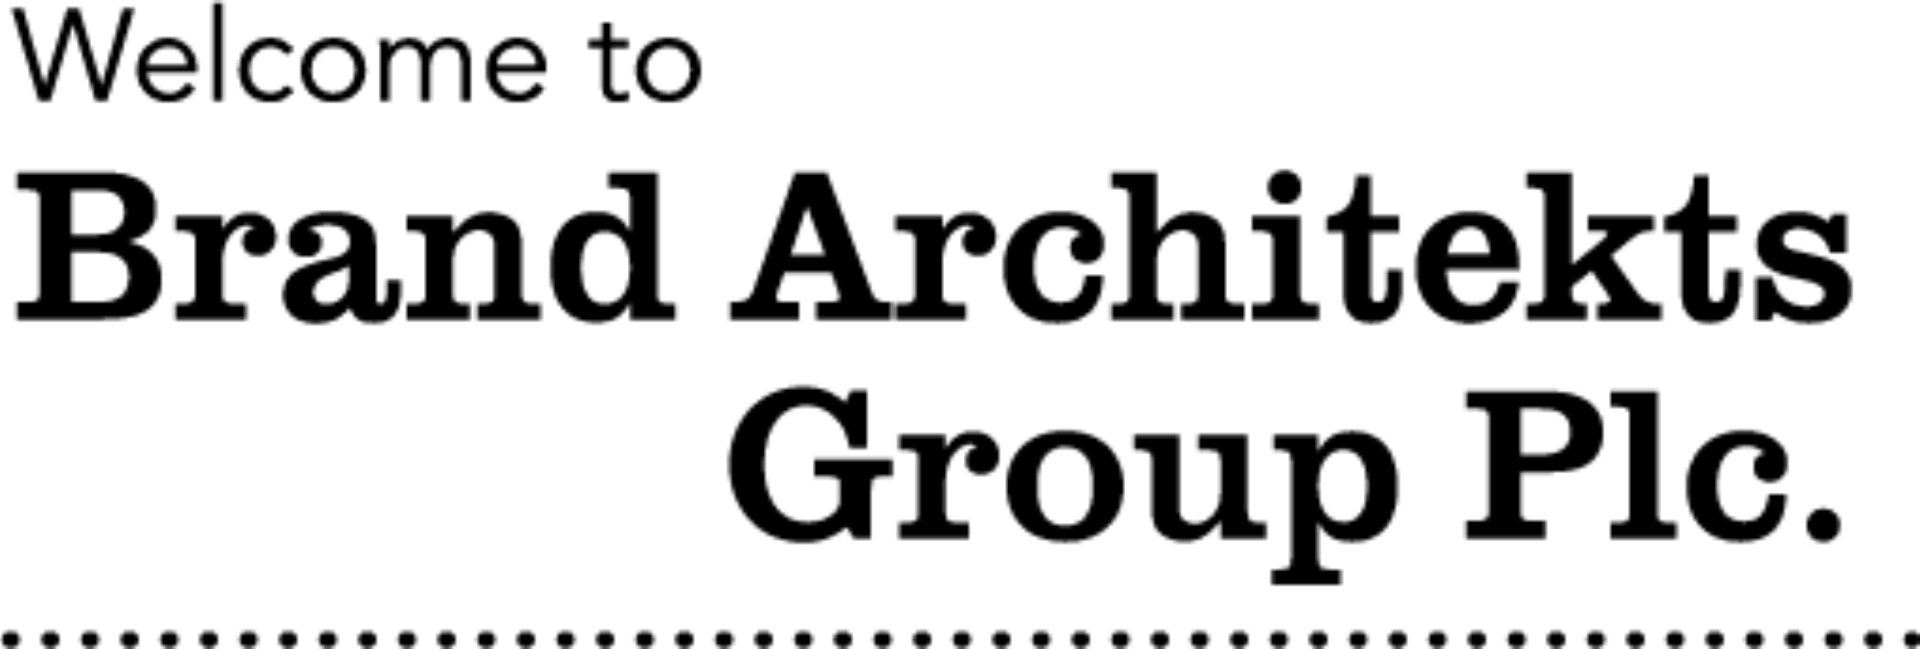 Brand architekts welcome mobile 2x